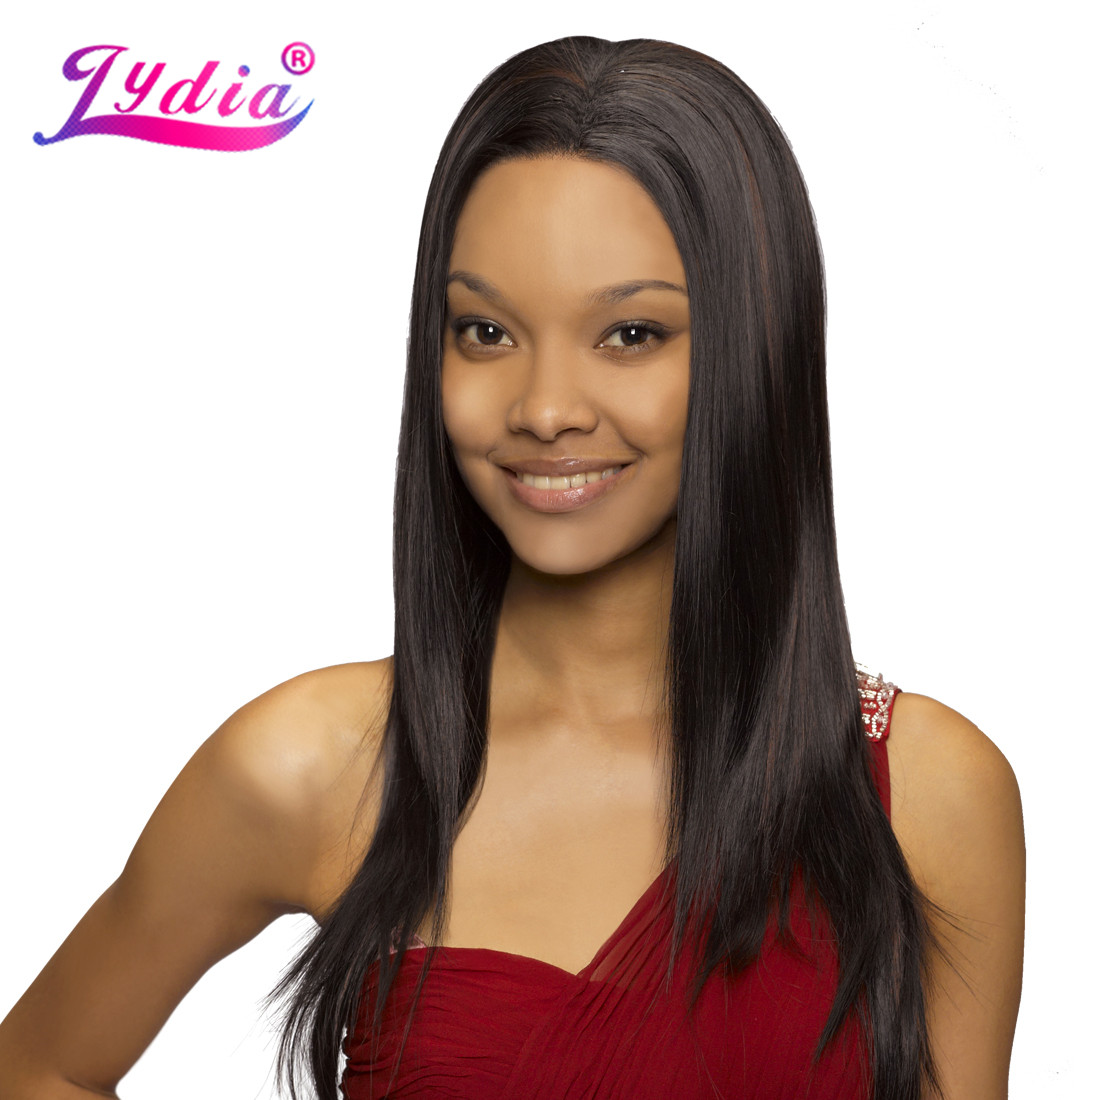 Lydia Long Silky Straight Synthetic Hair Wig Piano Color Wig Heat Resistant Glueless Lace Front Full Wigs For Women